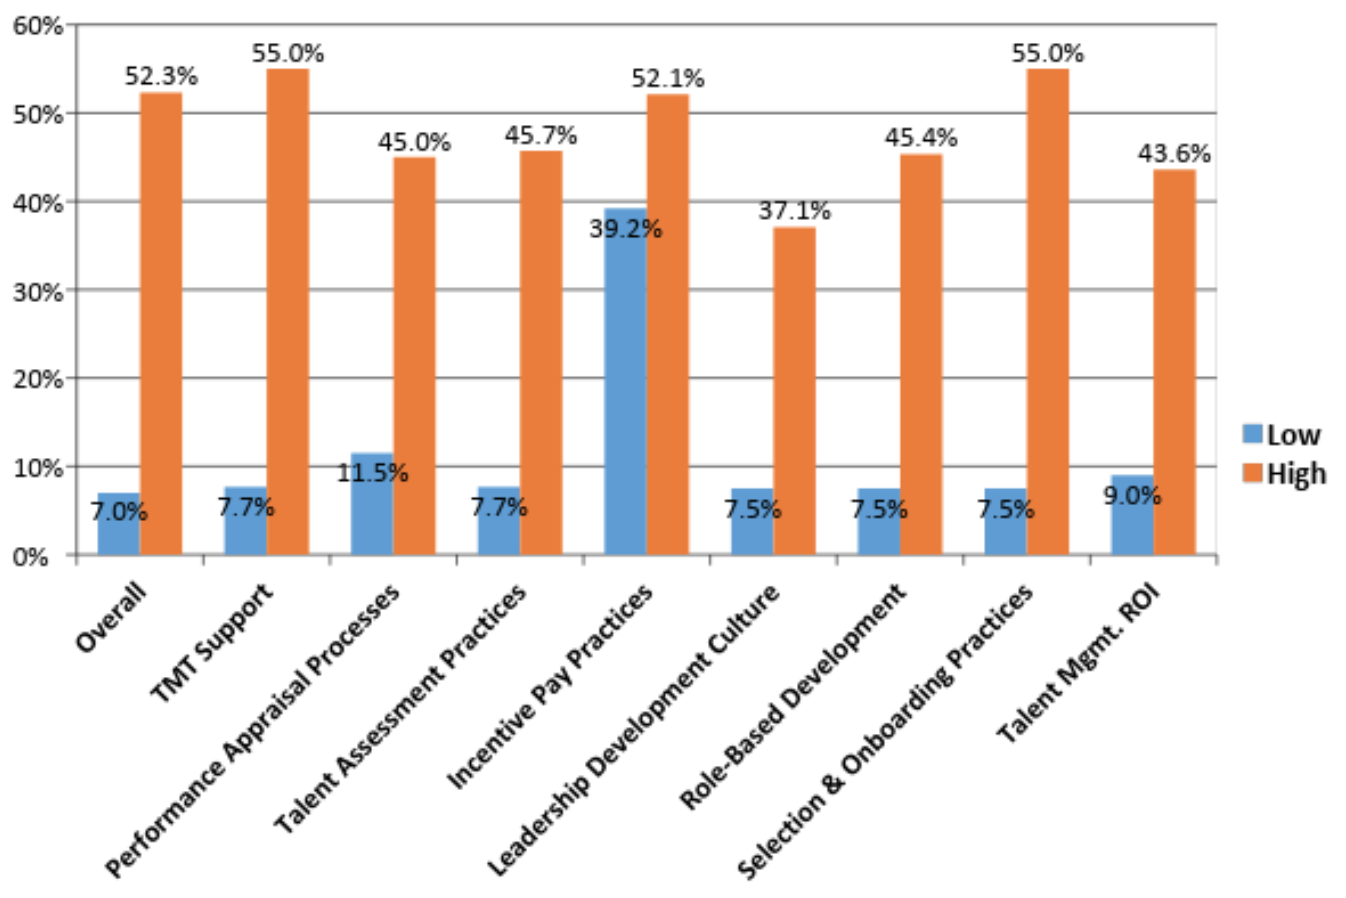 Figure 3 - Note: Hospital organizations that scored at least one standard deviation above the sample mean across each best practice are presented in orange ('High'); hospital organizations that scored at least one standard deviation below the sample mean across each best practice are presented in blue ('Low).